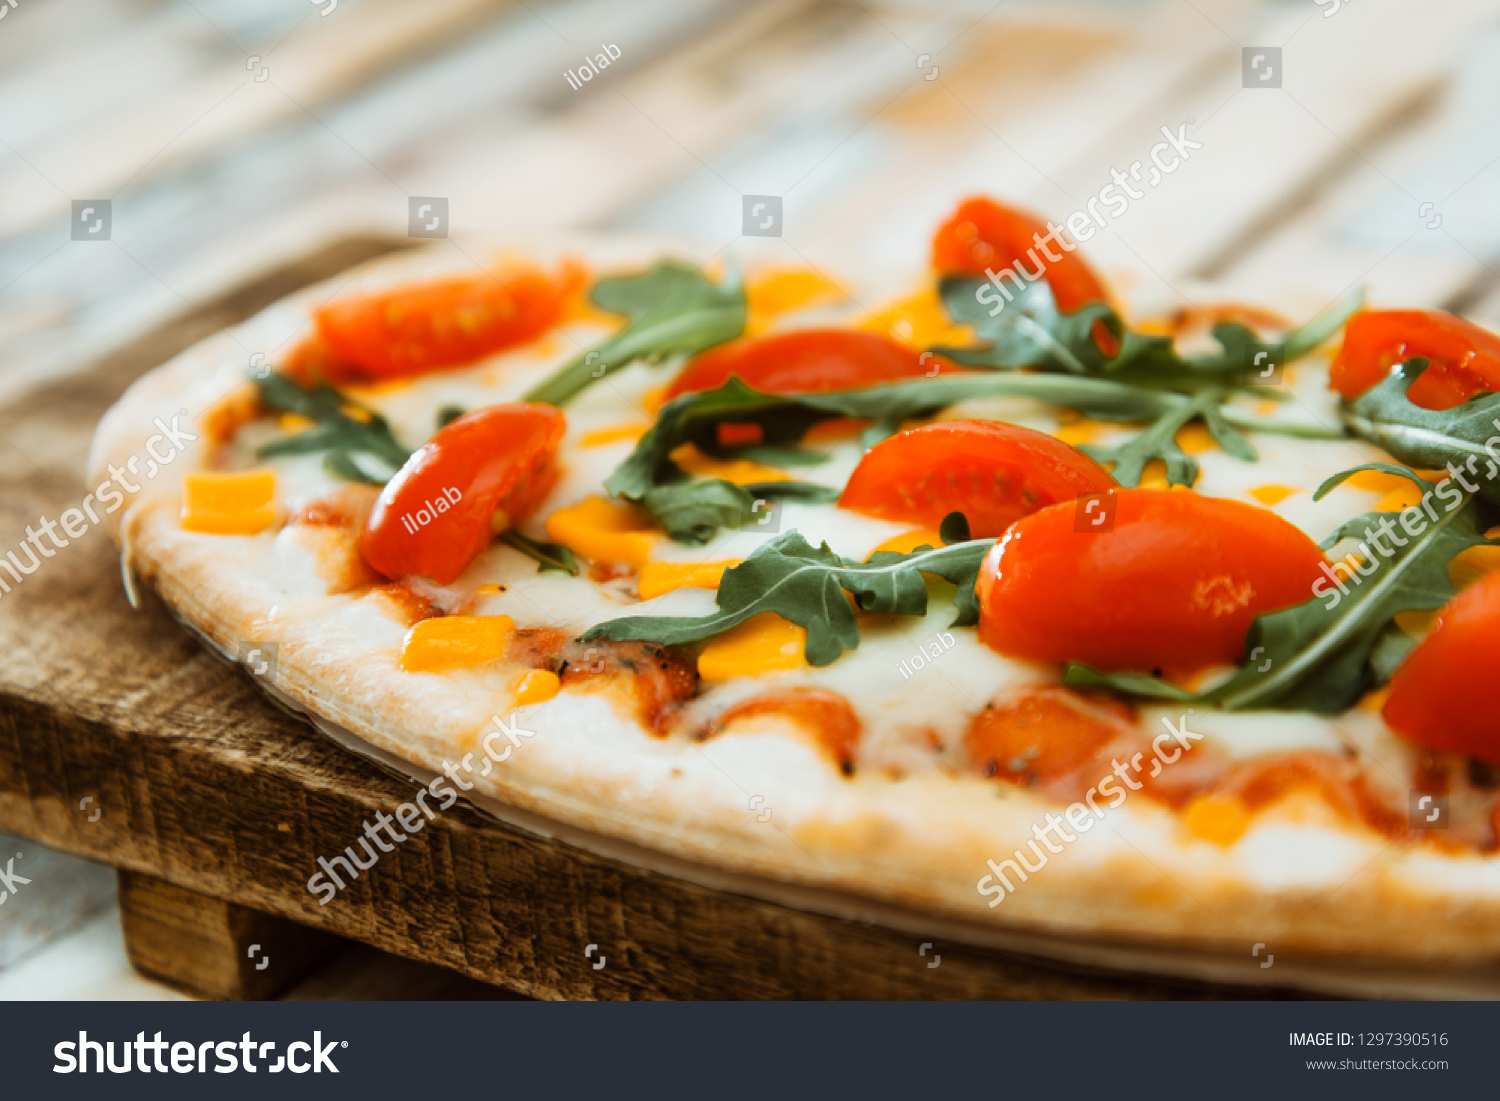 Pizza Mozzarella Emmental Cheddar Cheese Stock Photo Edit Now 1297390516,Part Time Data Entry Jobs From Home